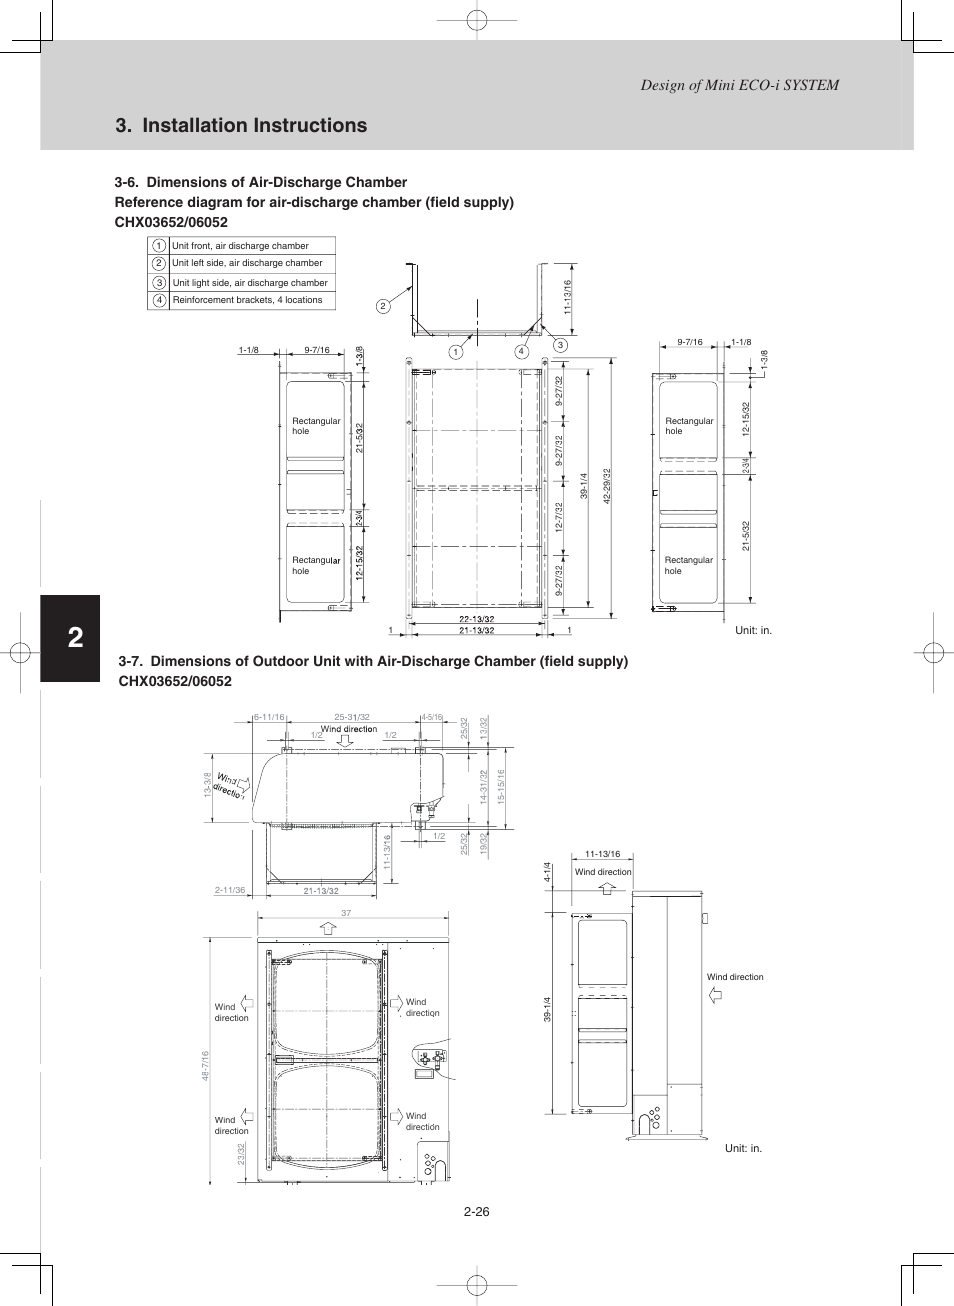 Installation instructions, Design of mini eco-i system